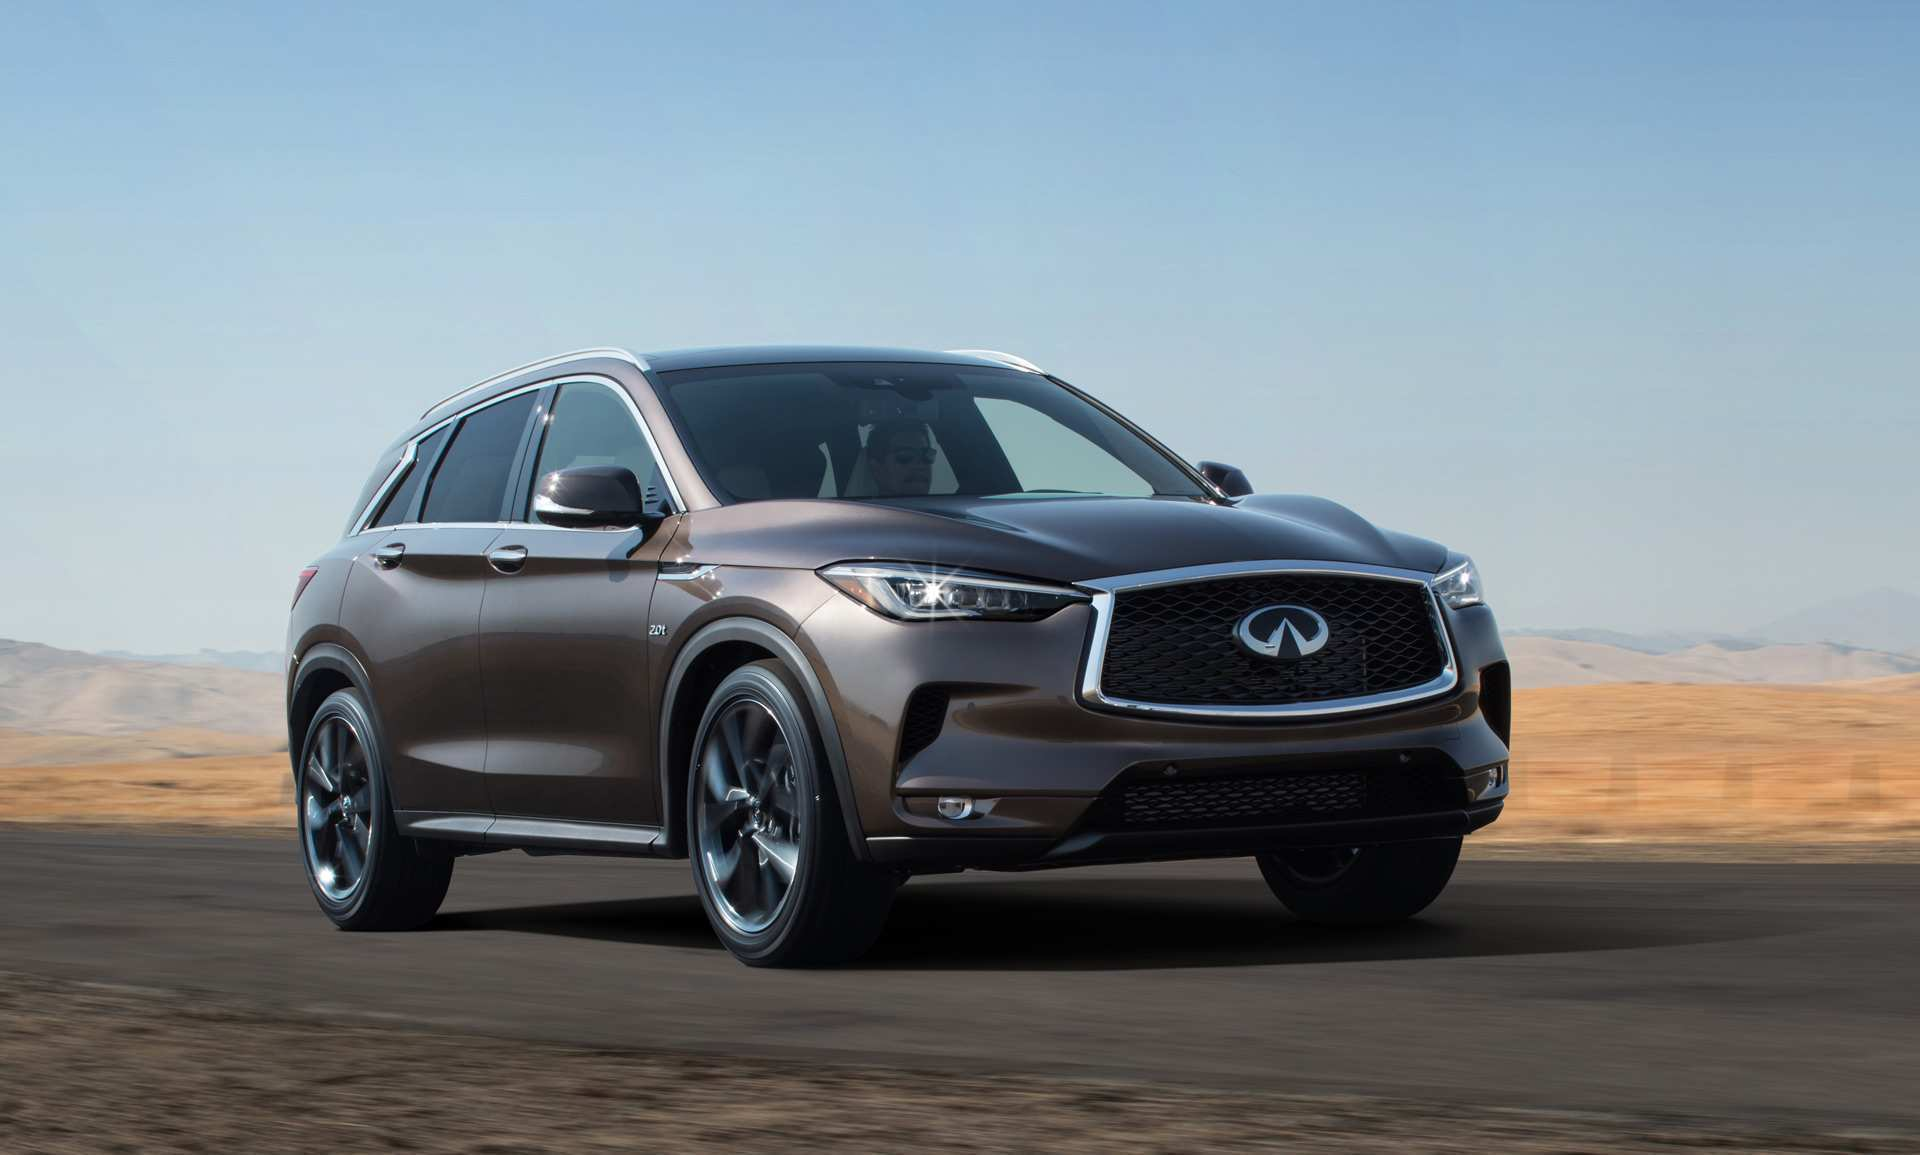 95 Gallery of 2019 Infiniti Qx50 News Pictures with 2019 Infiniti Qx50 News